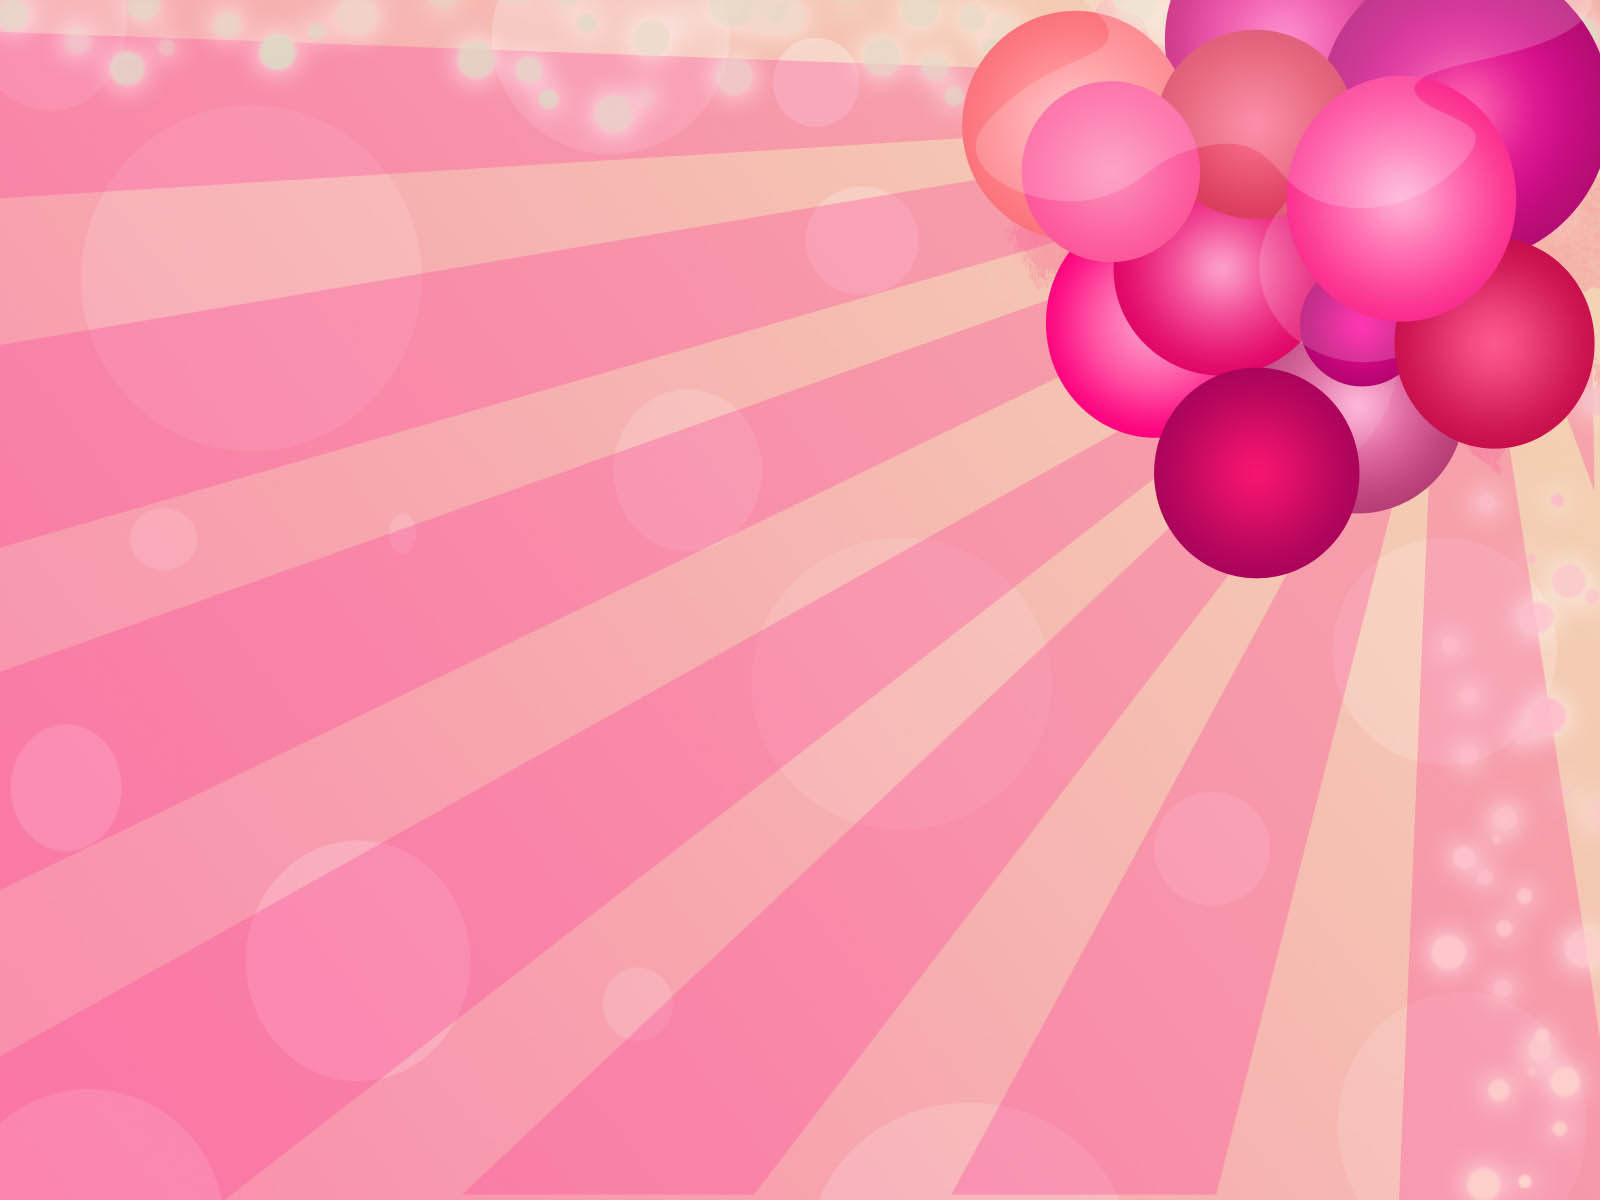 Abstract Pink Wallpapers